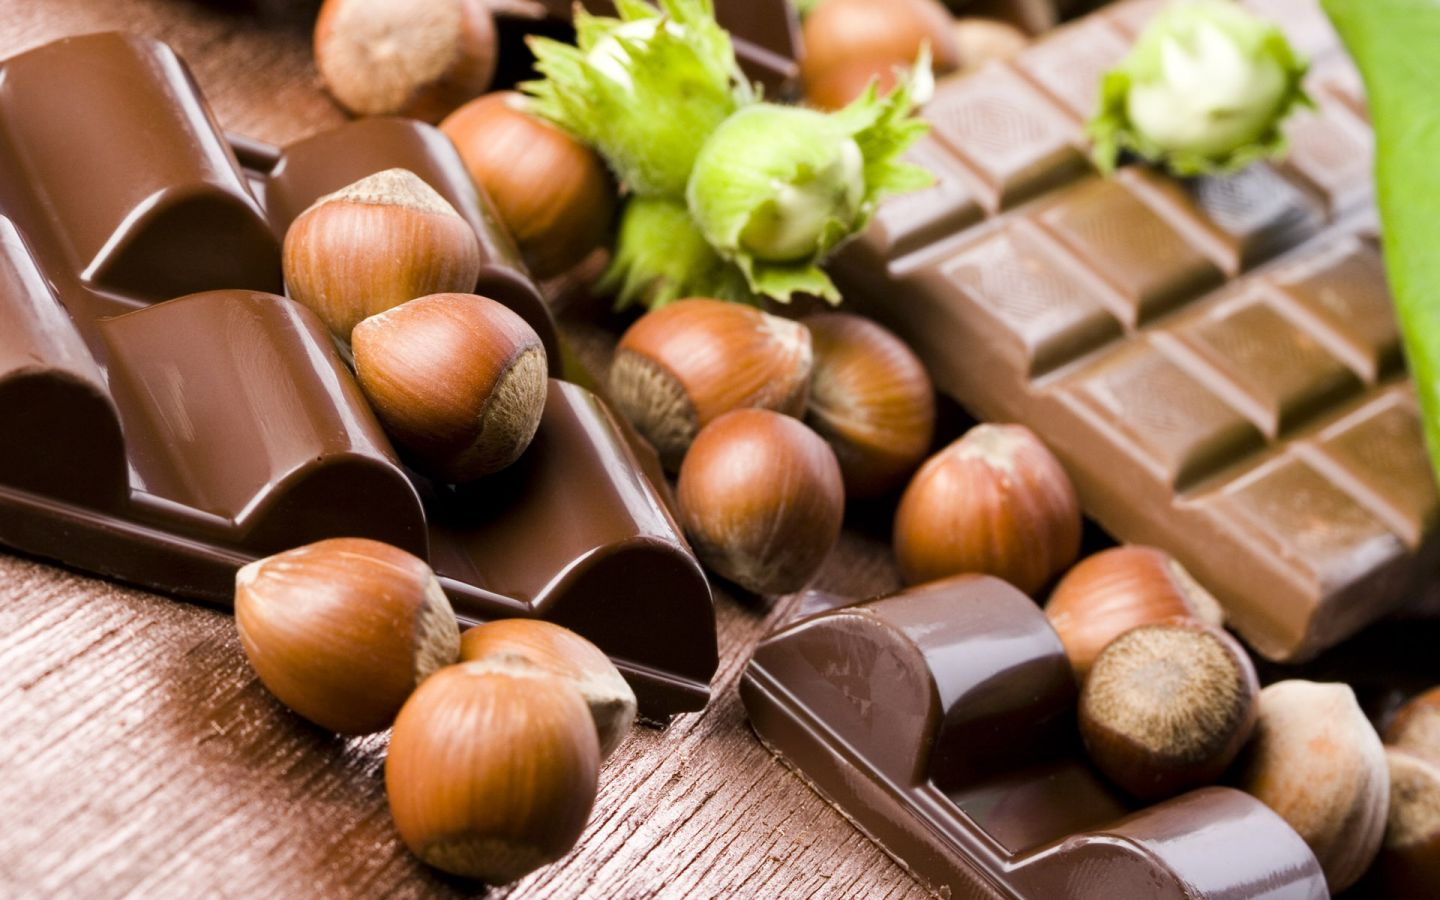 Chocolate images chocolate hd wallpaper and background photos 30472062 chocolate images chocolate hd wallpaper and background photos thecheapjerseys Images